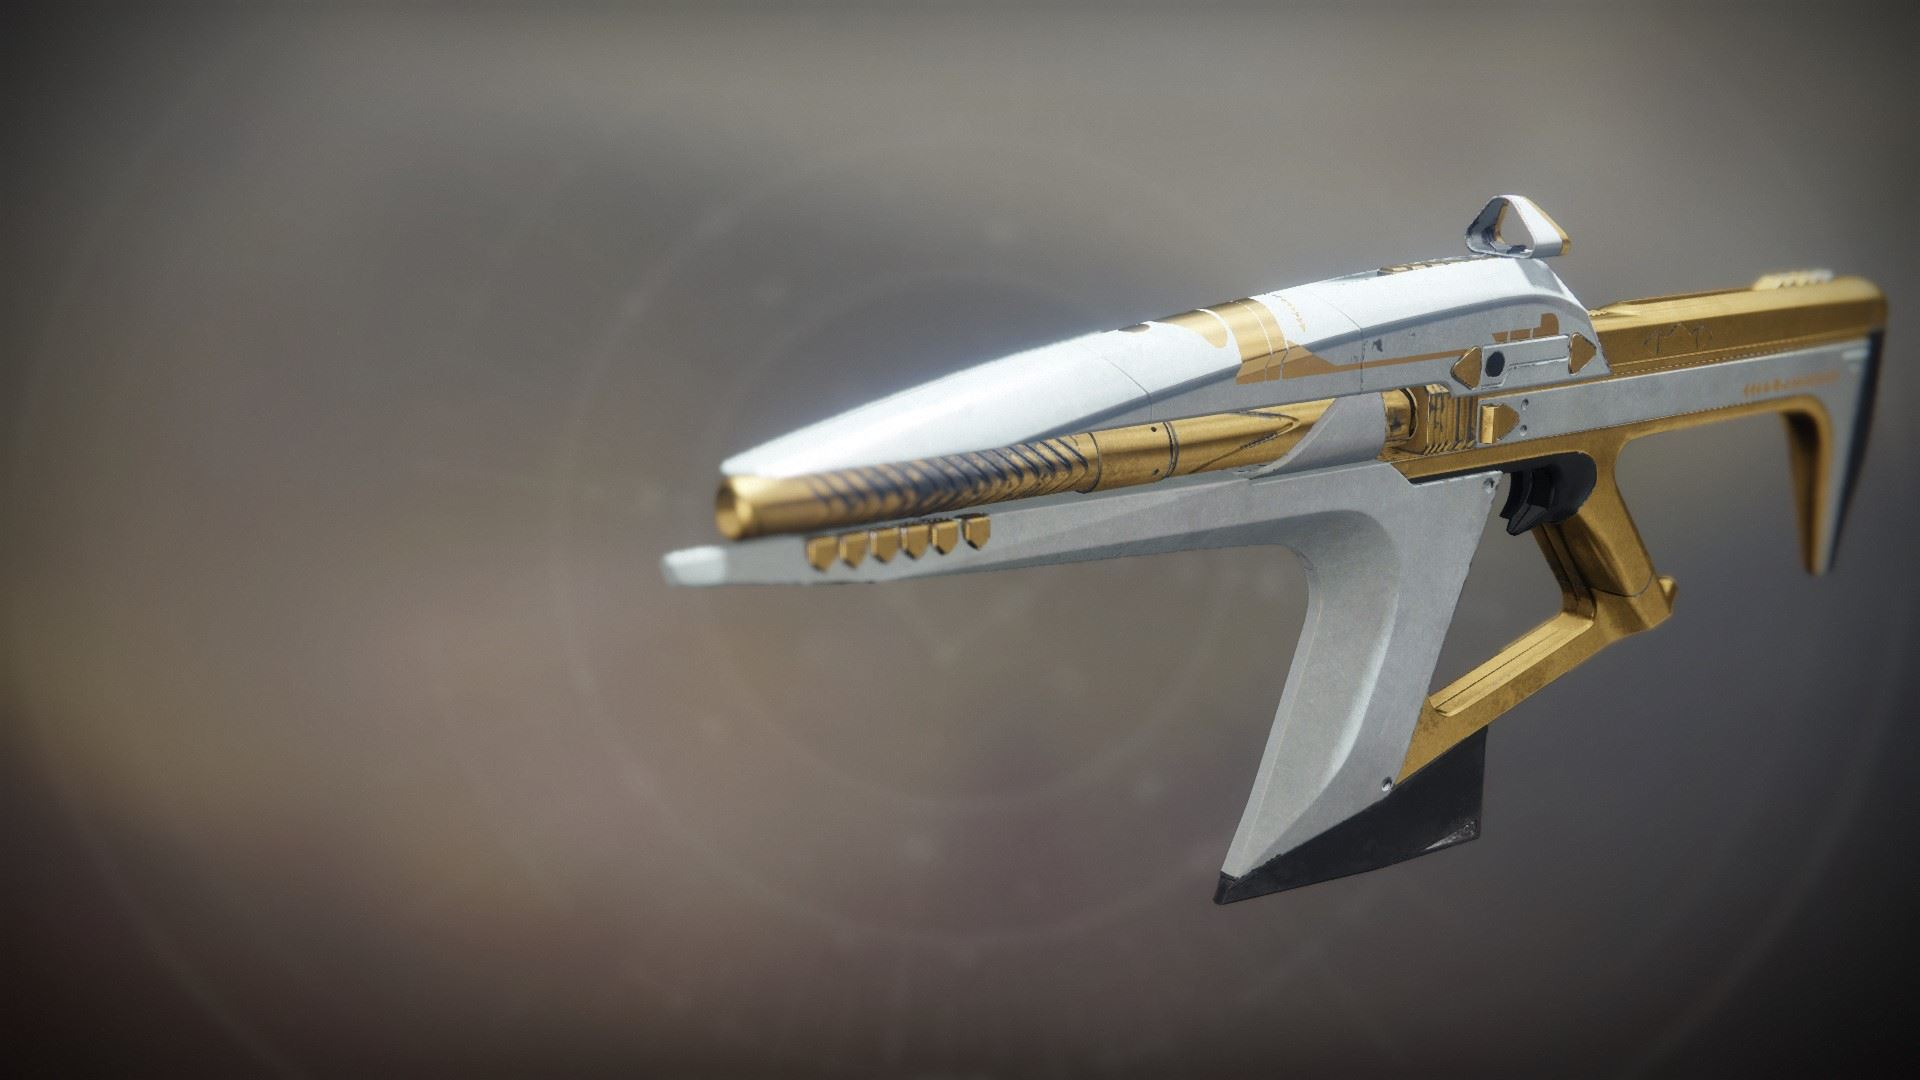 An in-game render of the The Emperor's Envy.